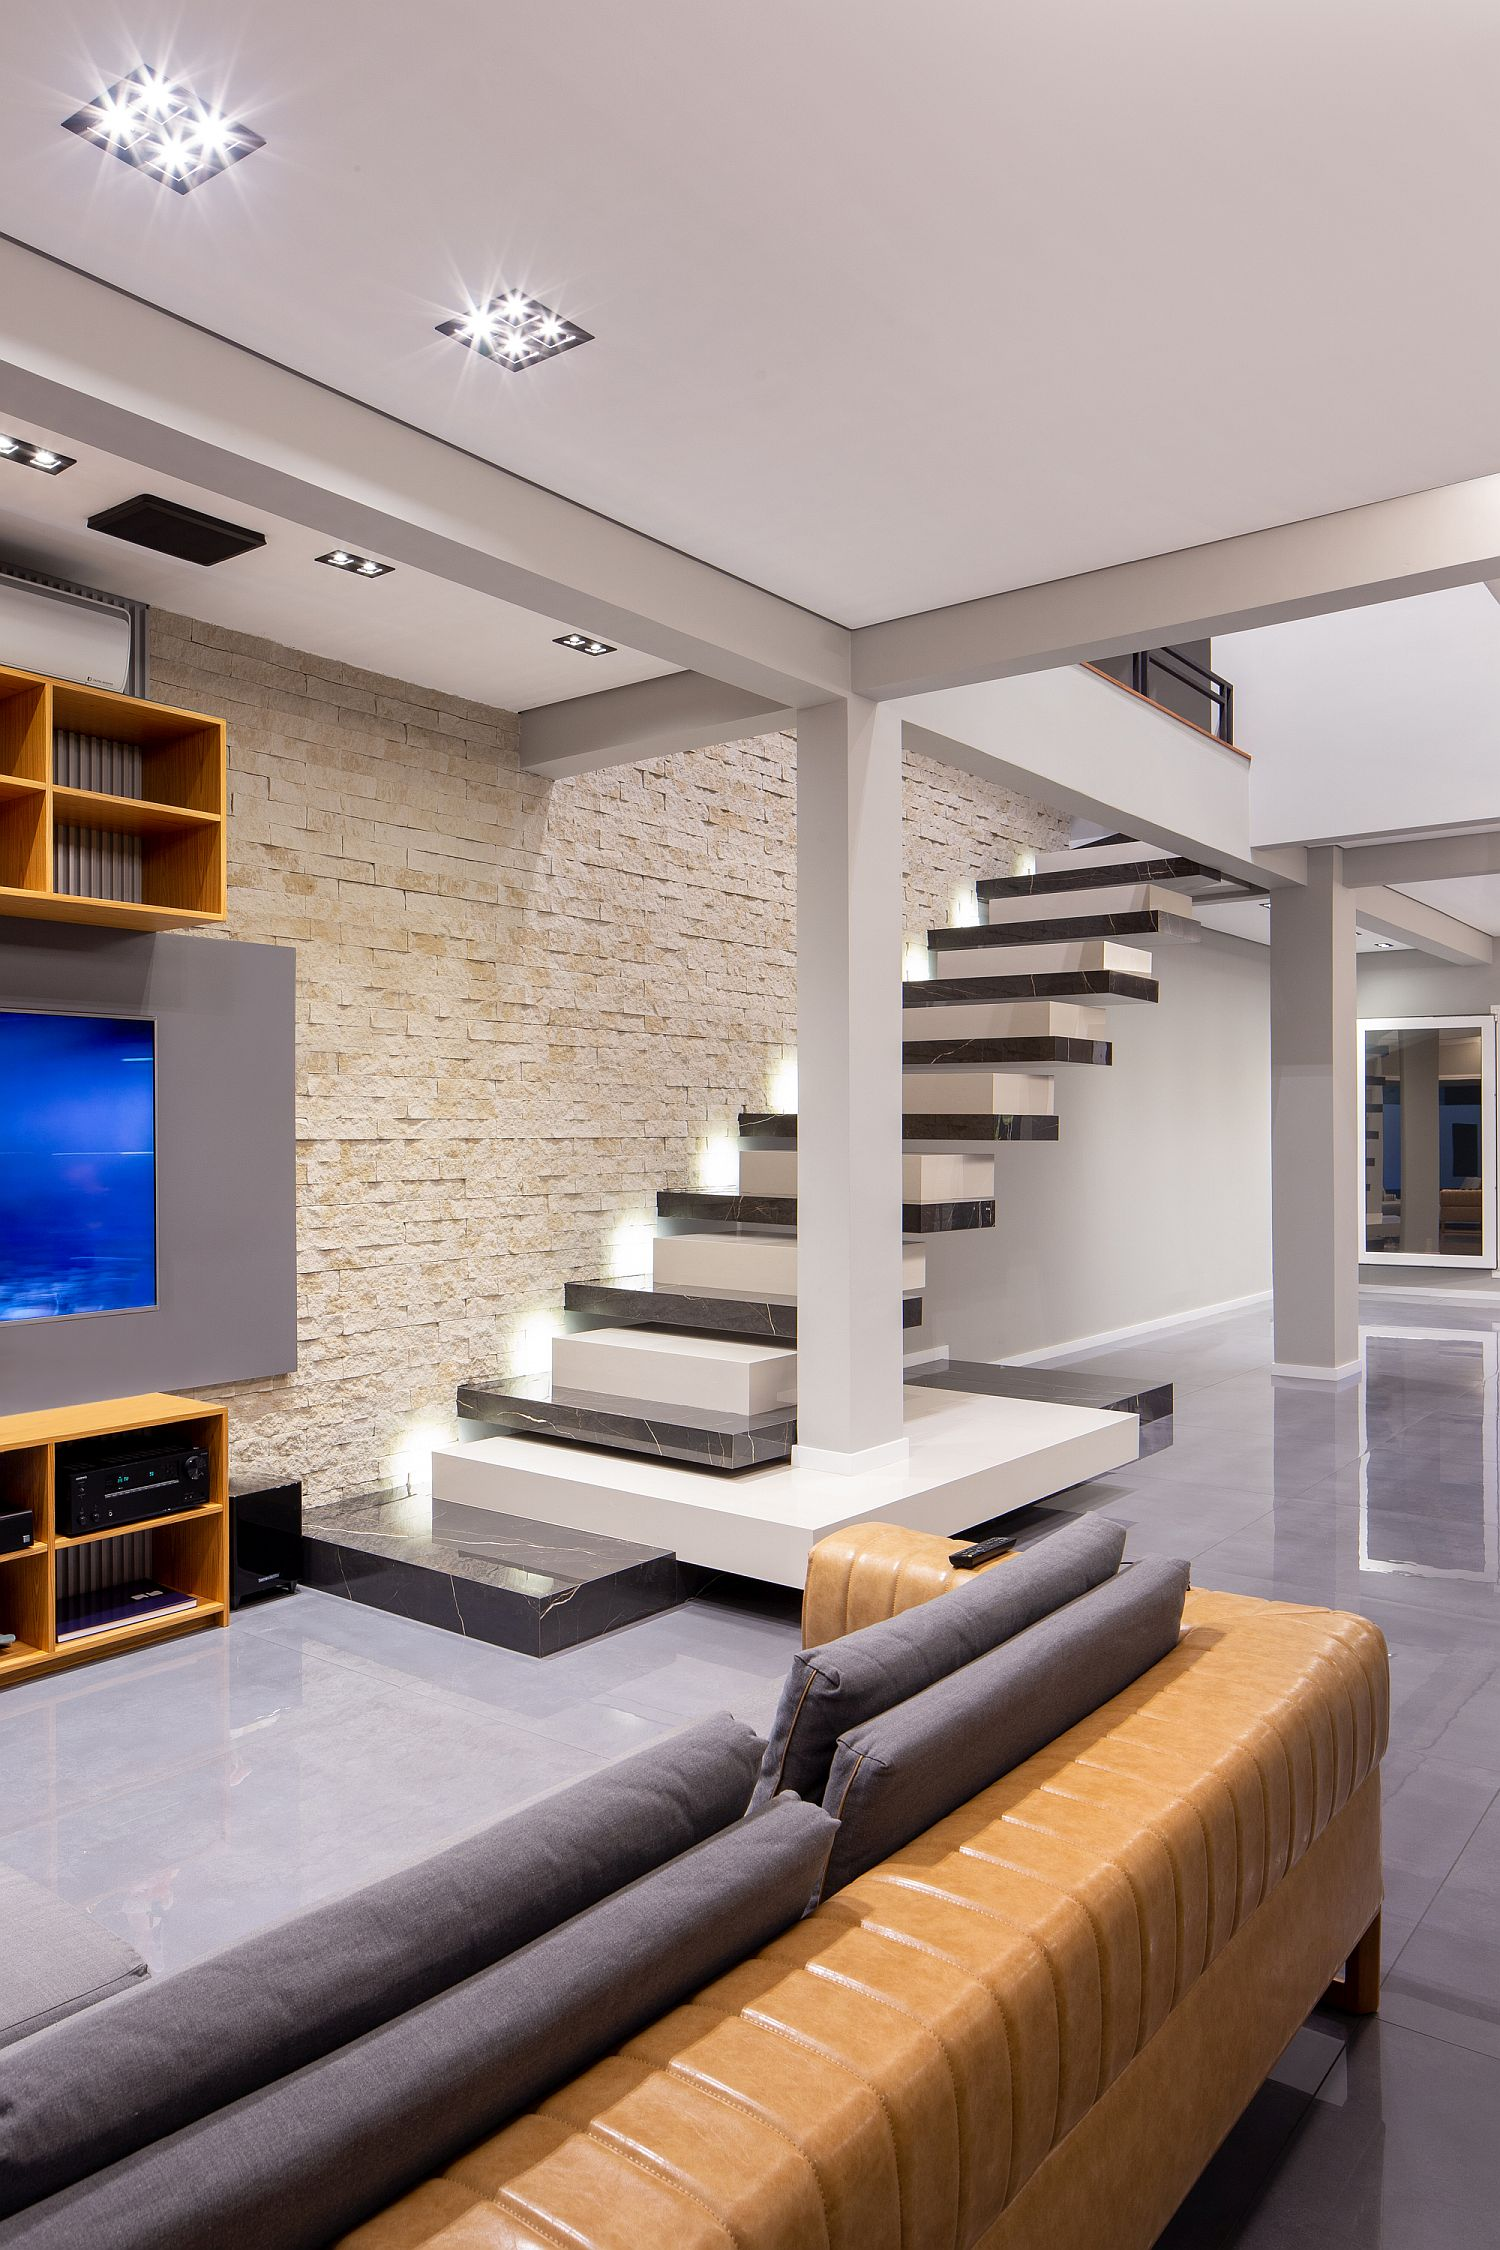 Dfferent types of ceramic tiles and finishes cover the interior of the house